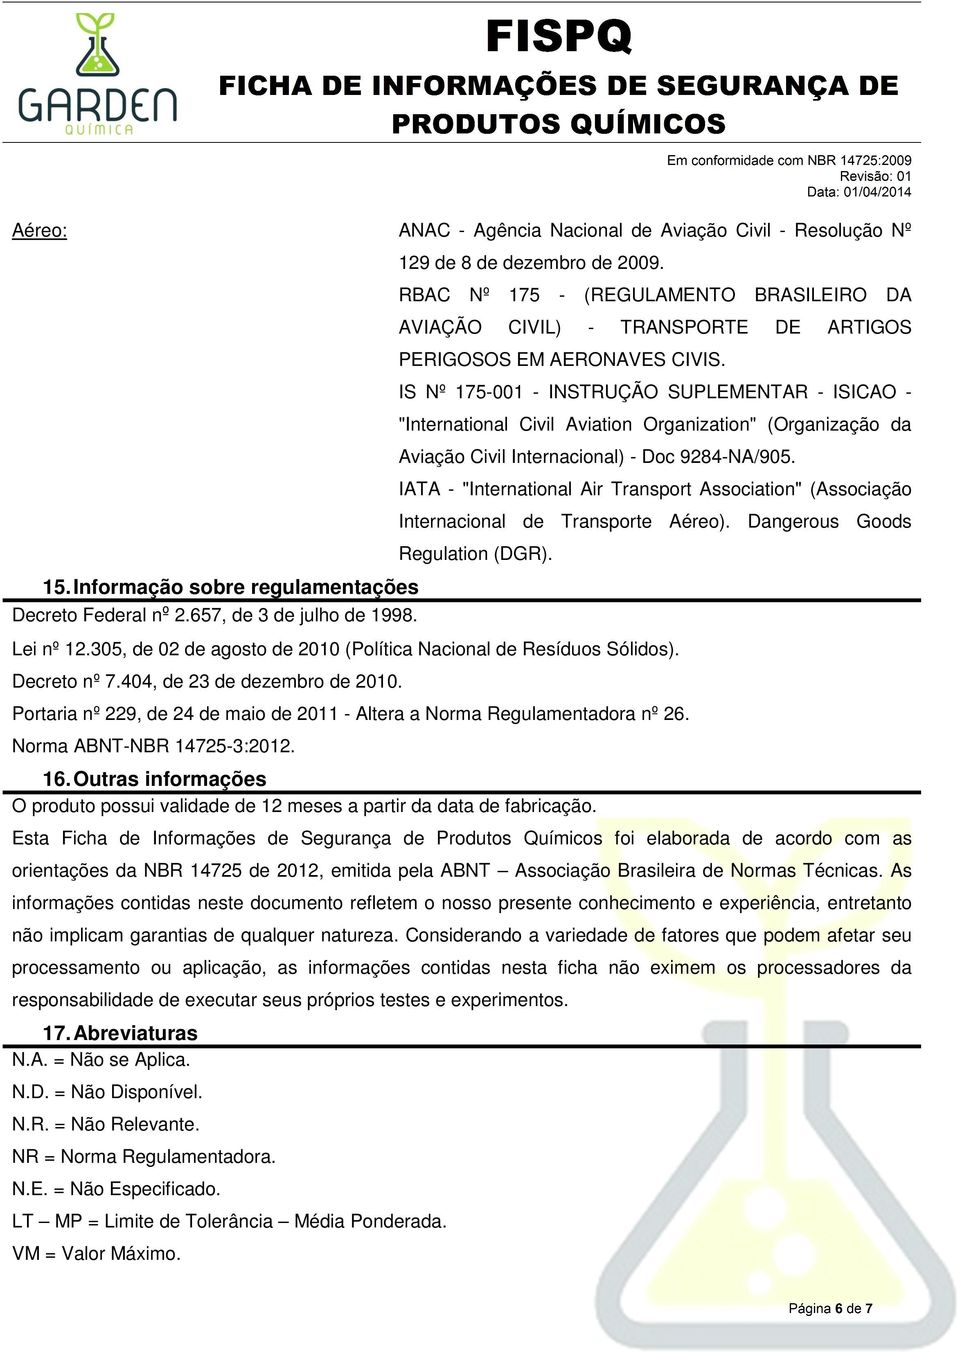 "IS Nº 175-001 - INSTRUÇÃO SUPLEMENTAR - ISICAO - ""International Civil Aviation Organization"" (Organização da Aviação Civil Internacional) - Doc 9284-NA/905."